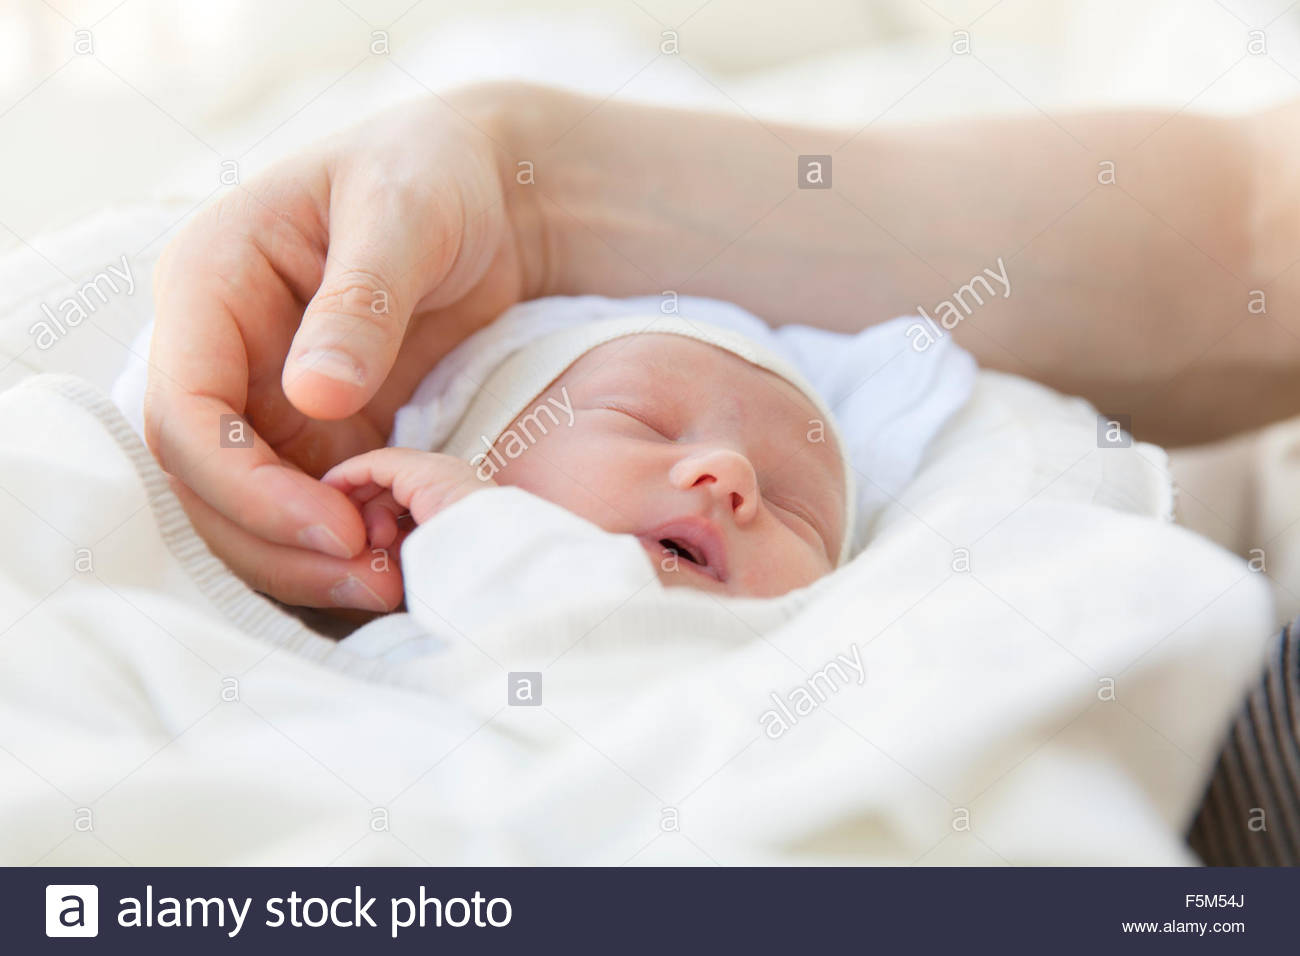 Sweden, Close-up of father holding baby boy's hand - Stock Image